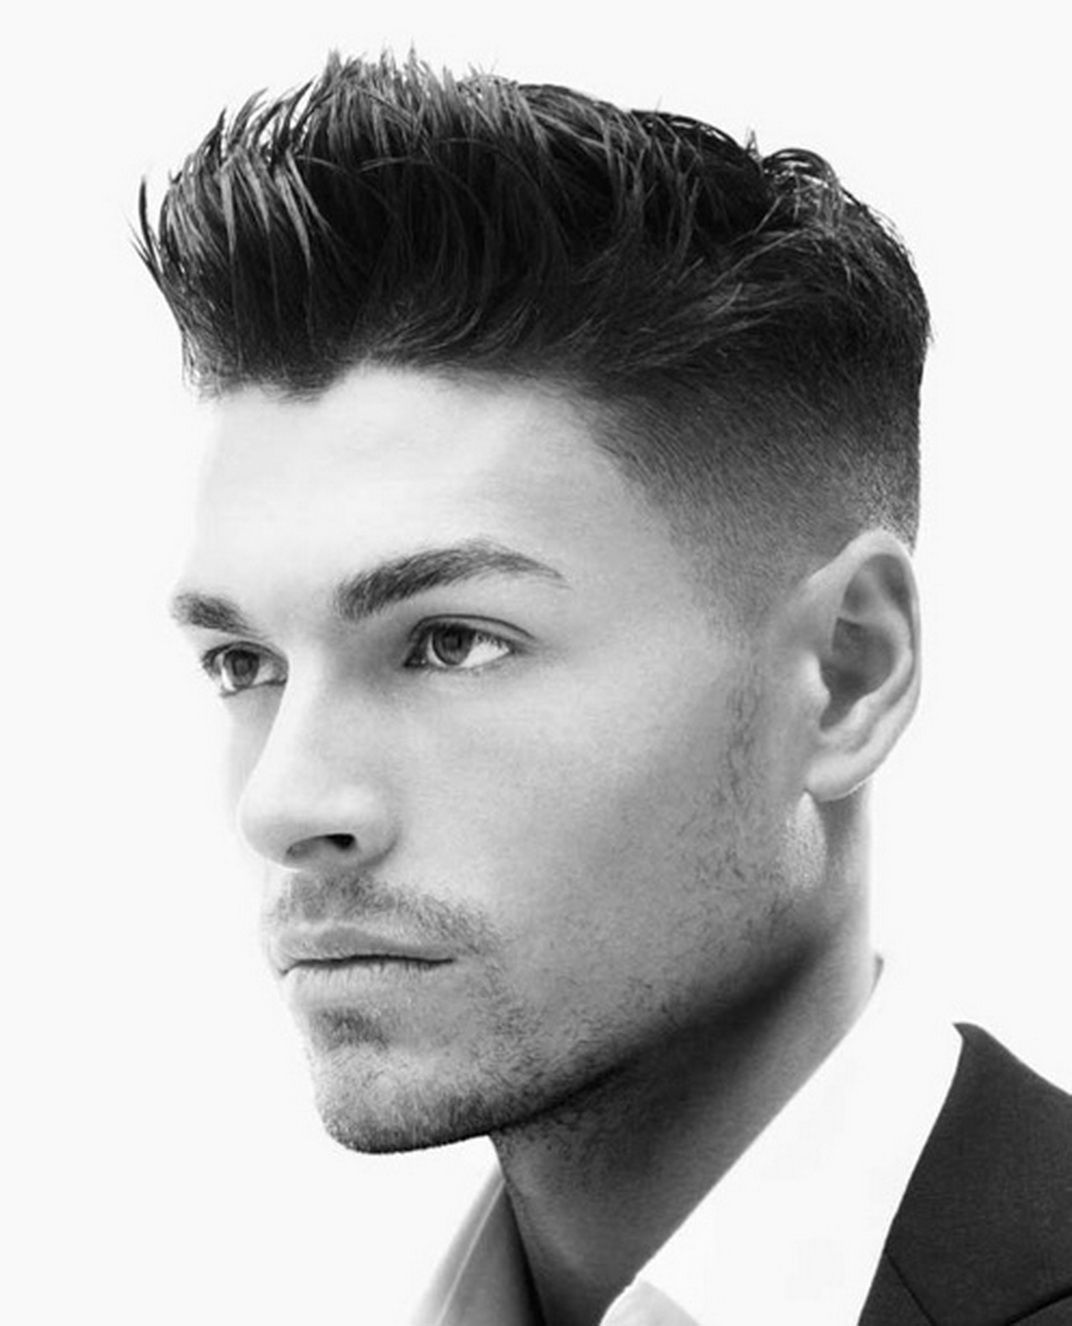 High Fade Hairstyles For Guys Cool High Fade Haircut For Men Trend